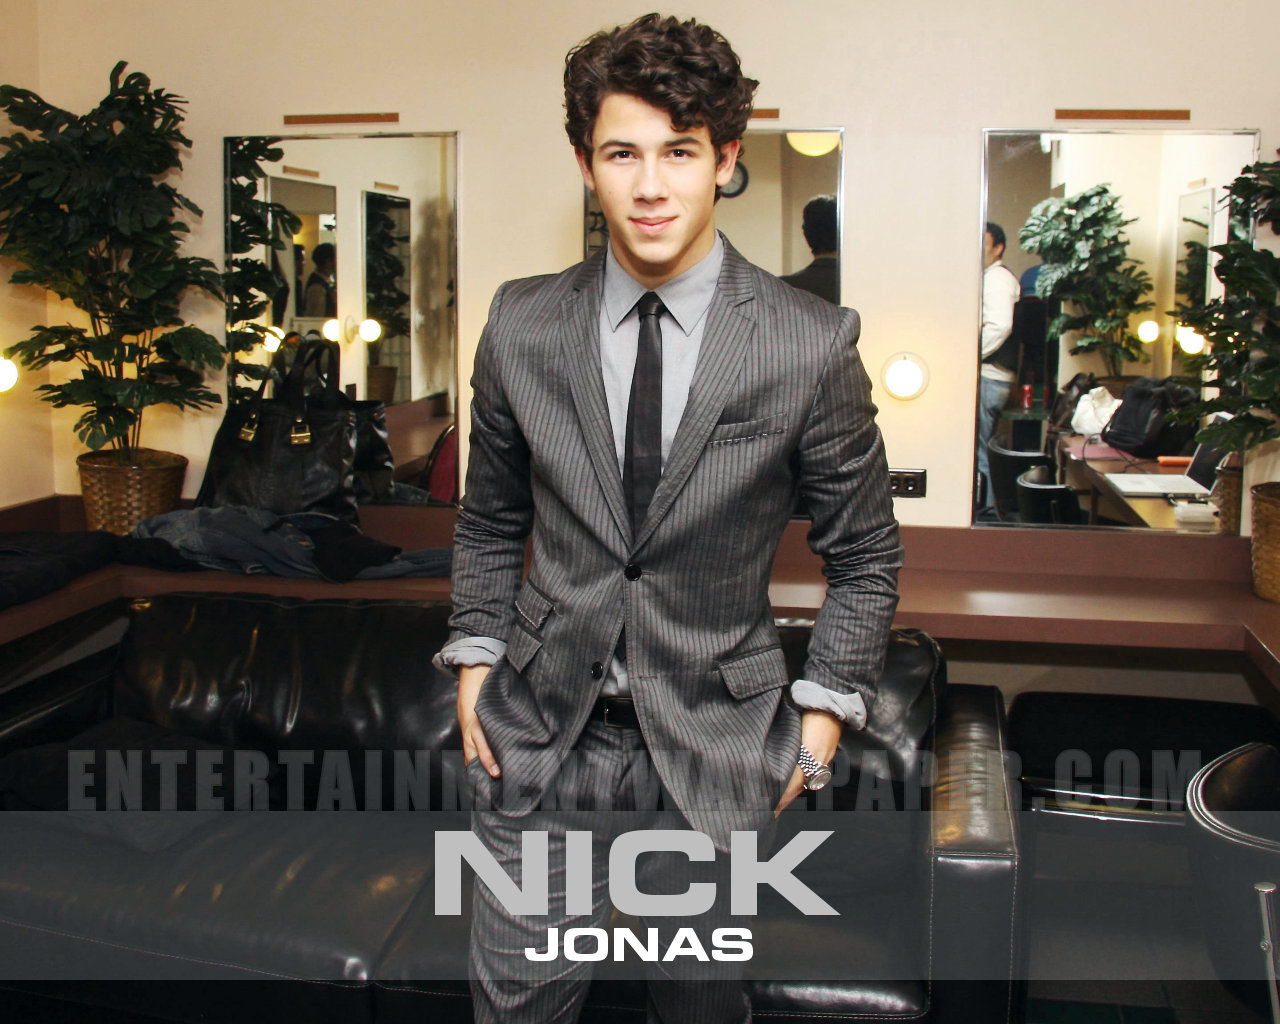 Best 60 Nick Jonas Desktop Backgrounds On Hipwallpaper Nick Jonas Look For Wallpaper Nick Jonas Miley Cyrus Wallpapers And Jealous Nick Jonas Wallpaper